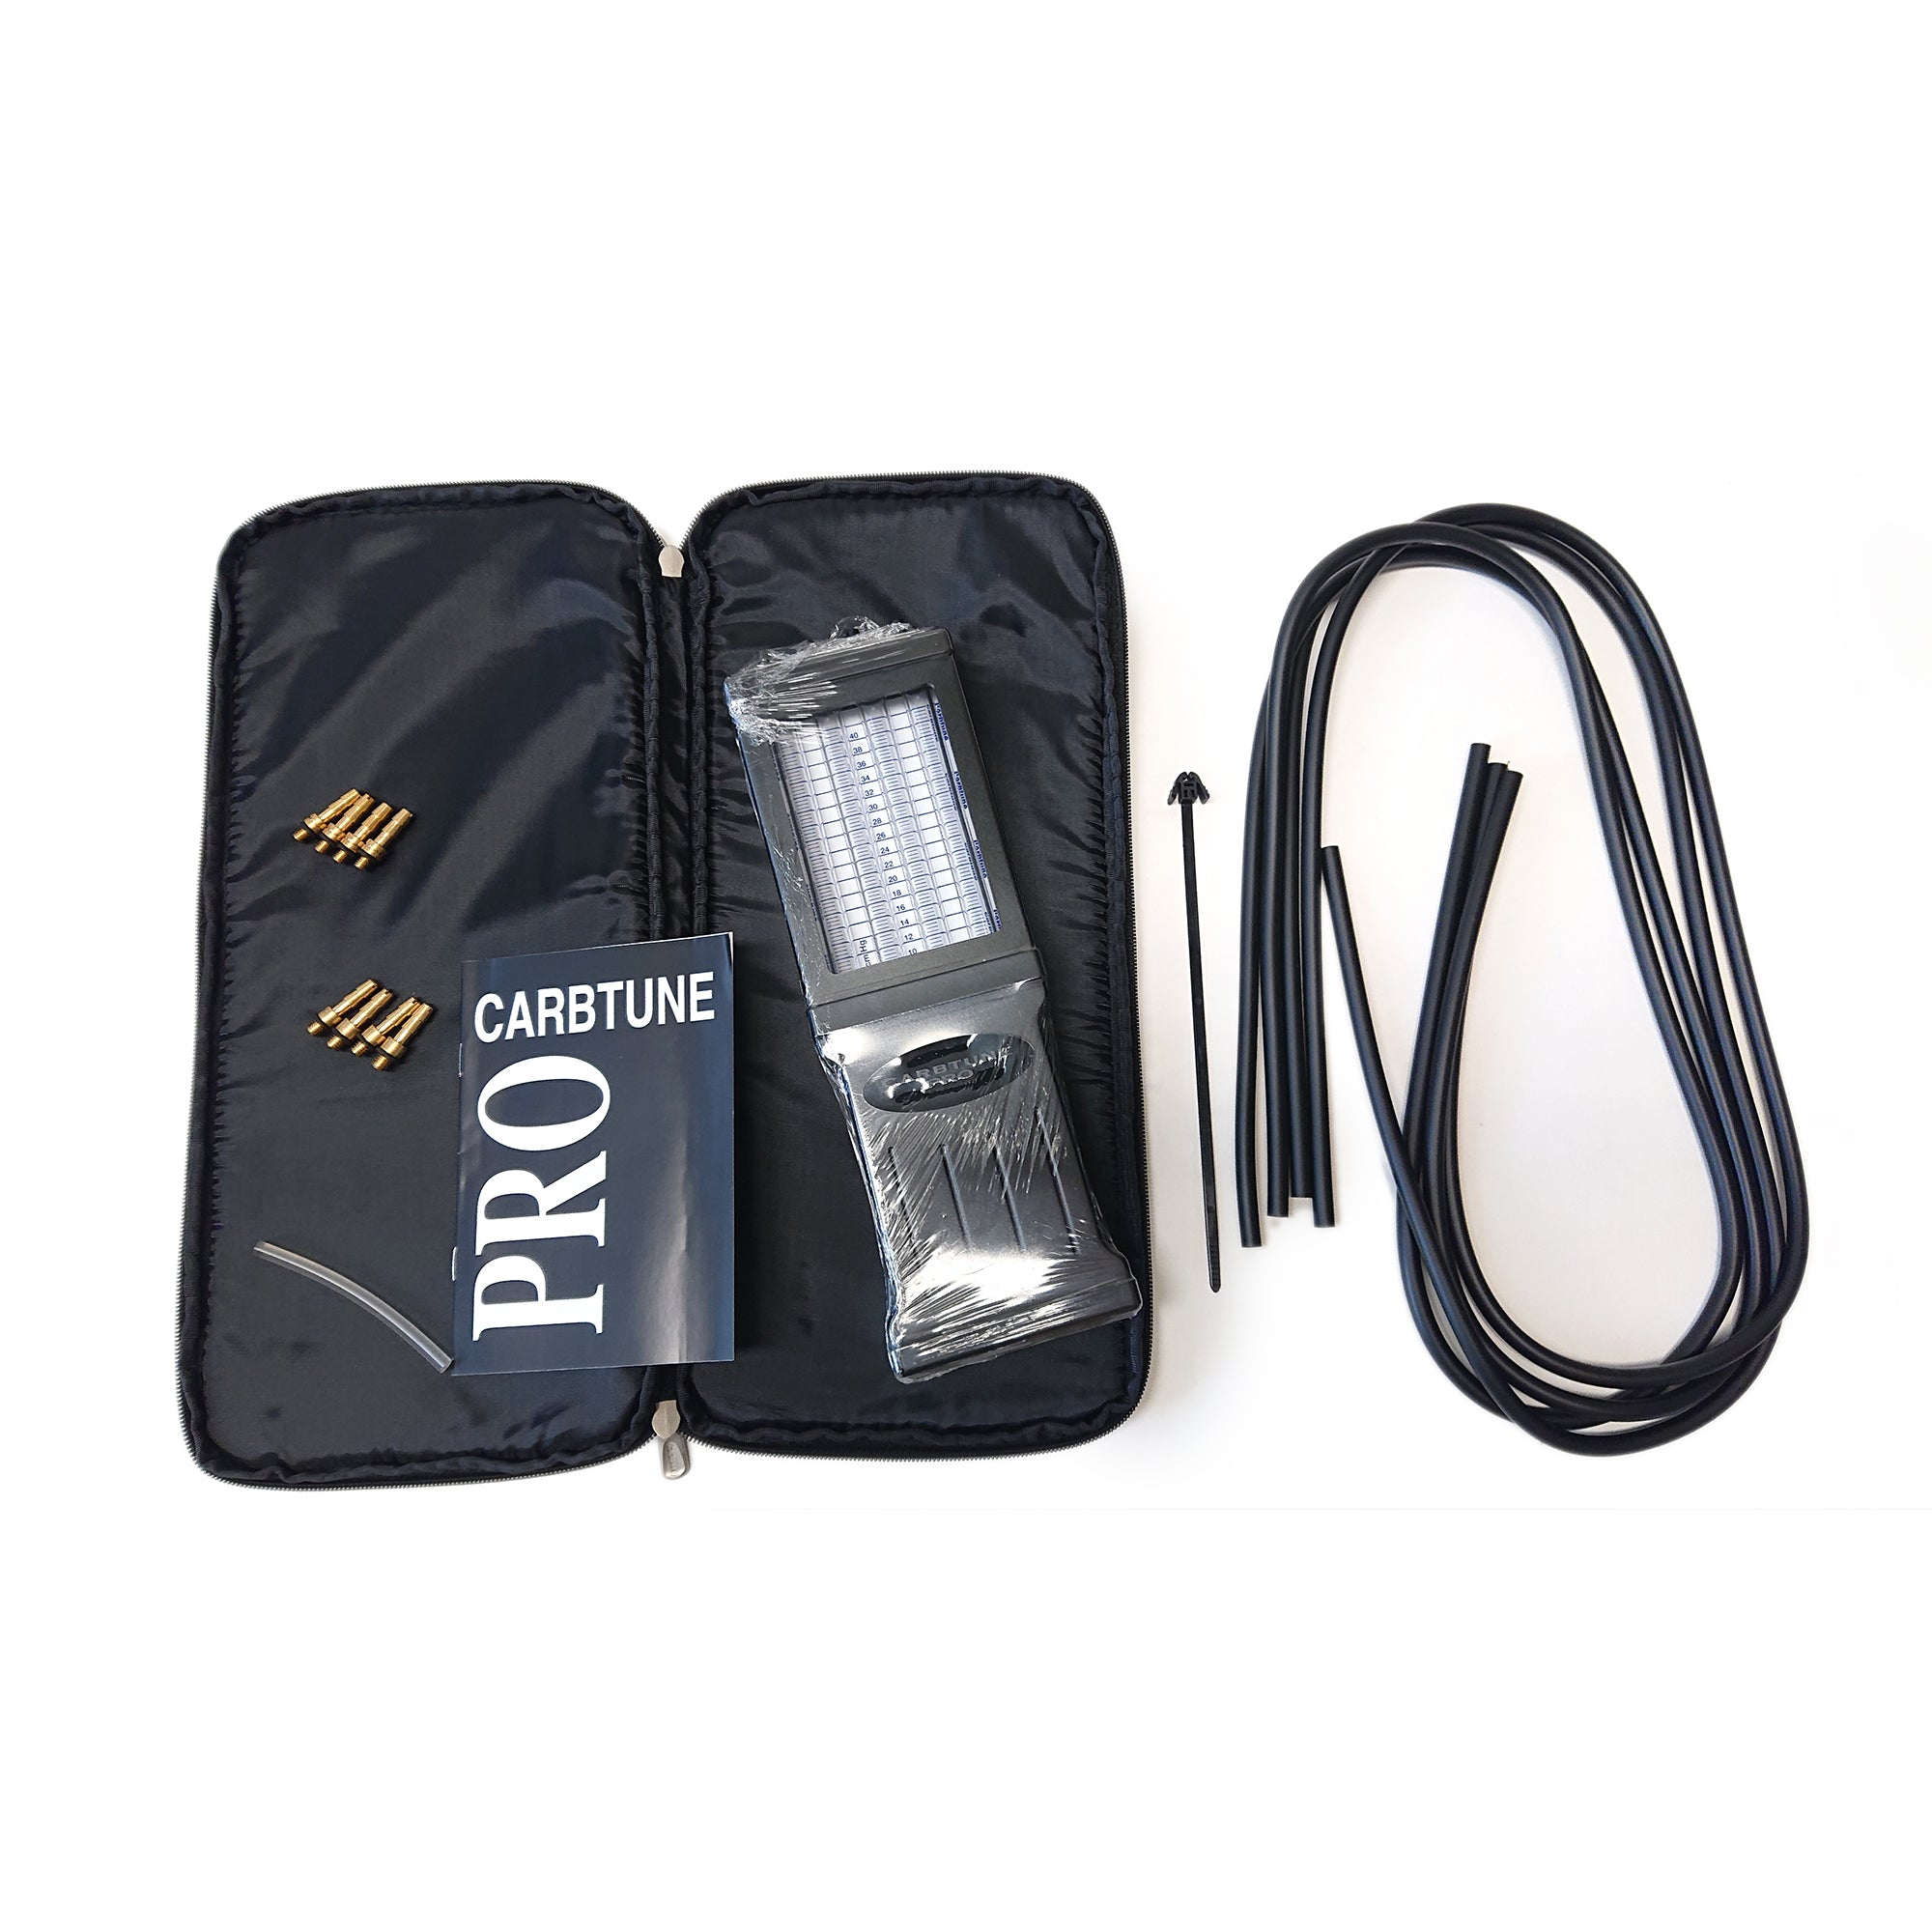 Carbtune Pro Synchronization Tool with Case